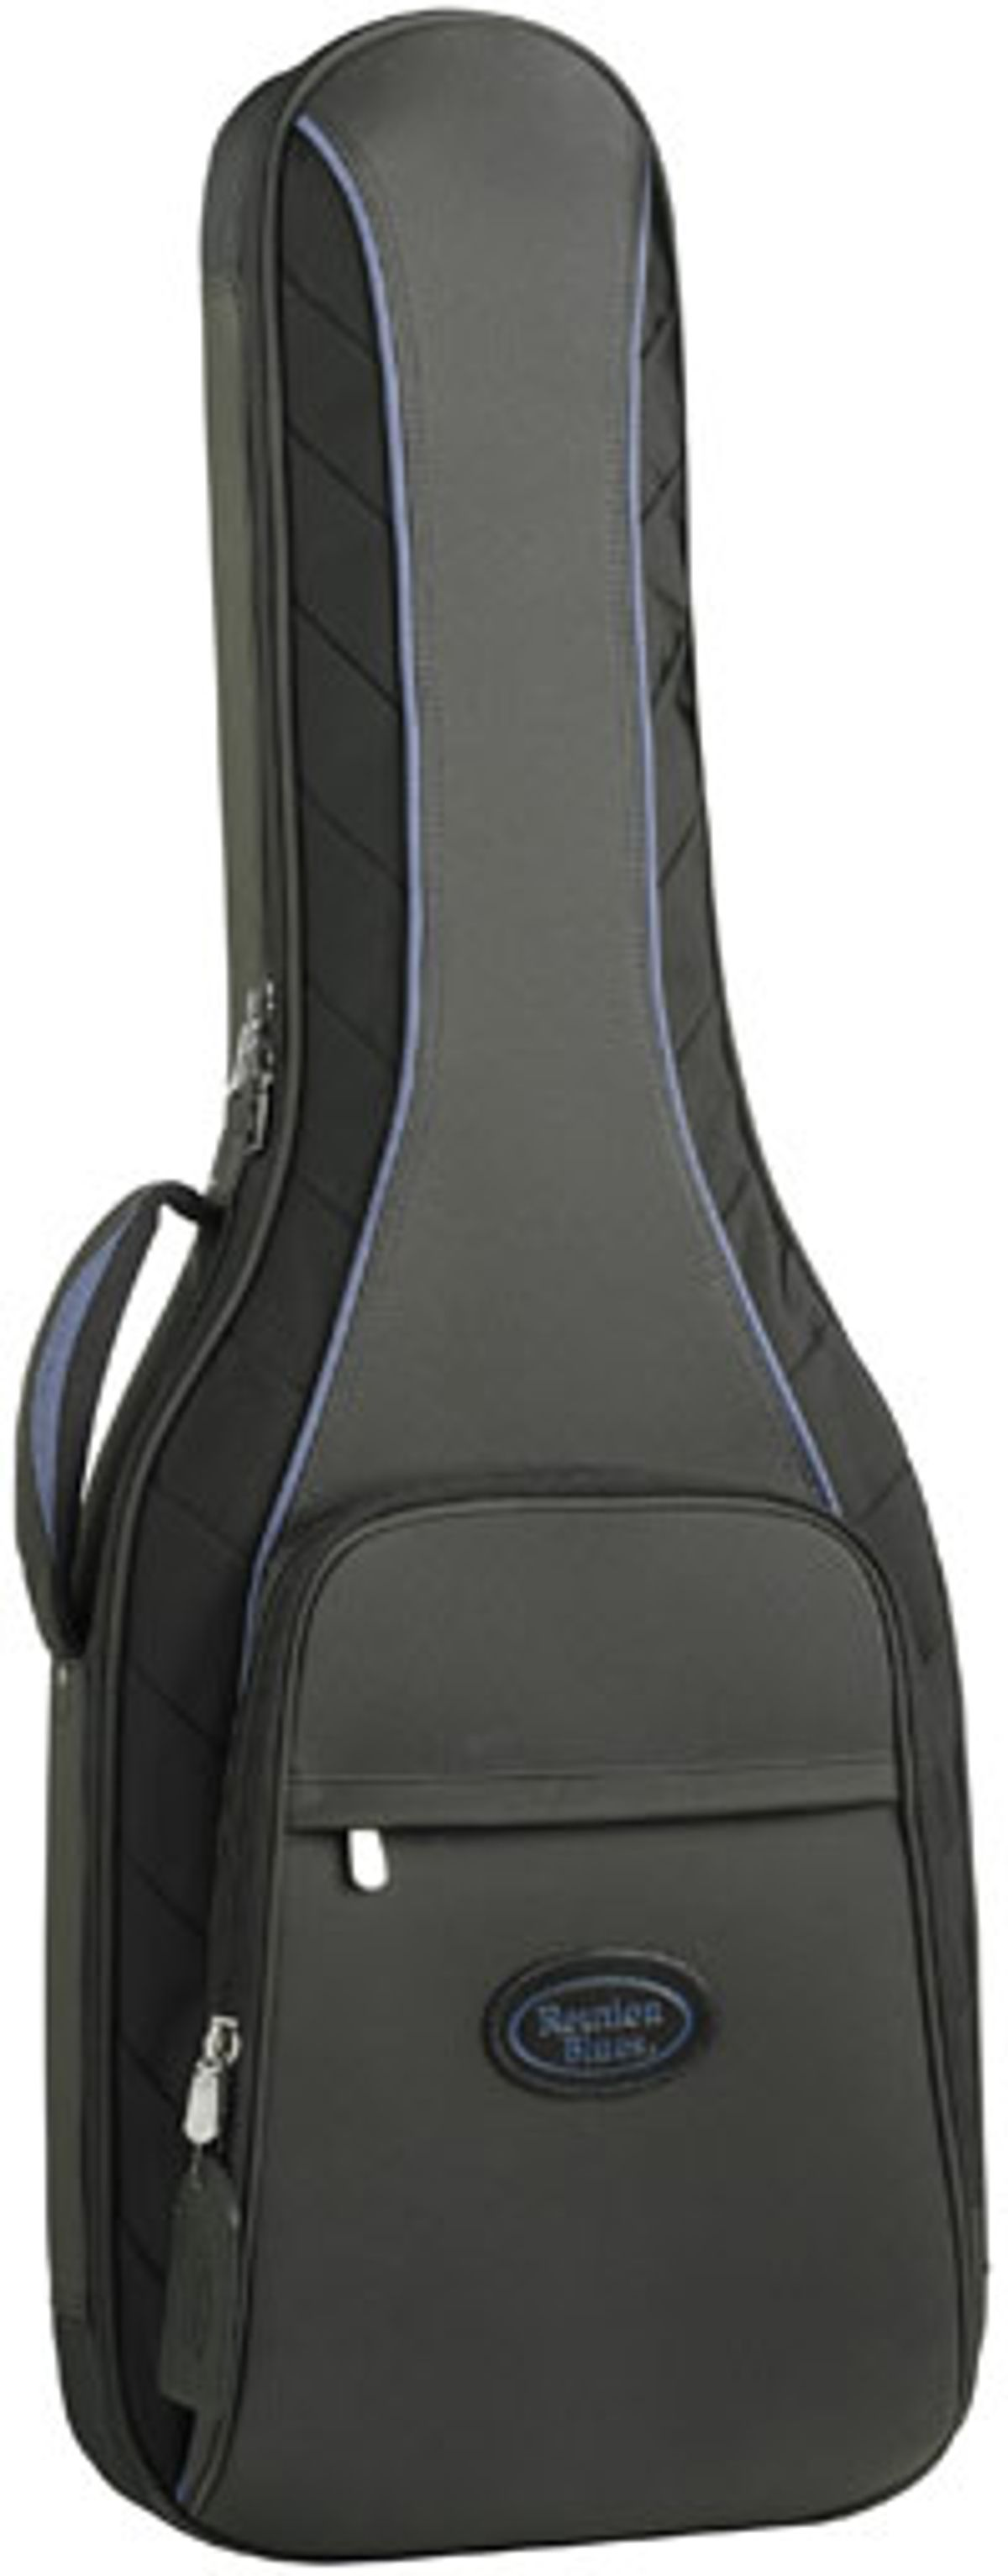 Reunion Blues Introduces the Continental Case